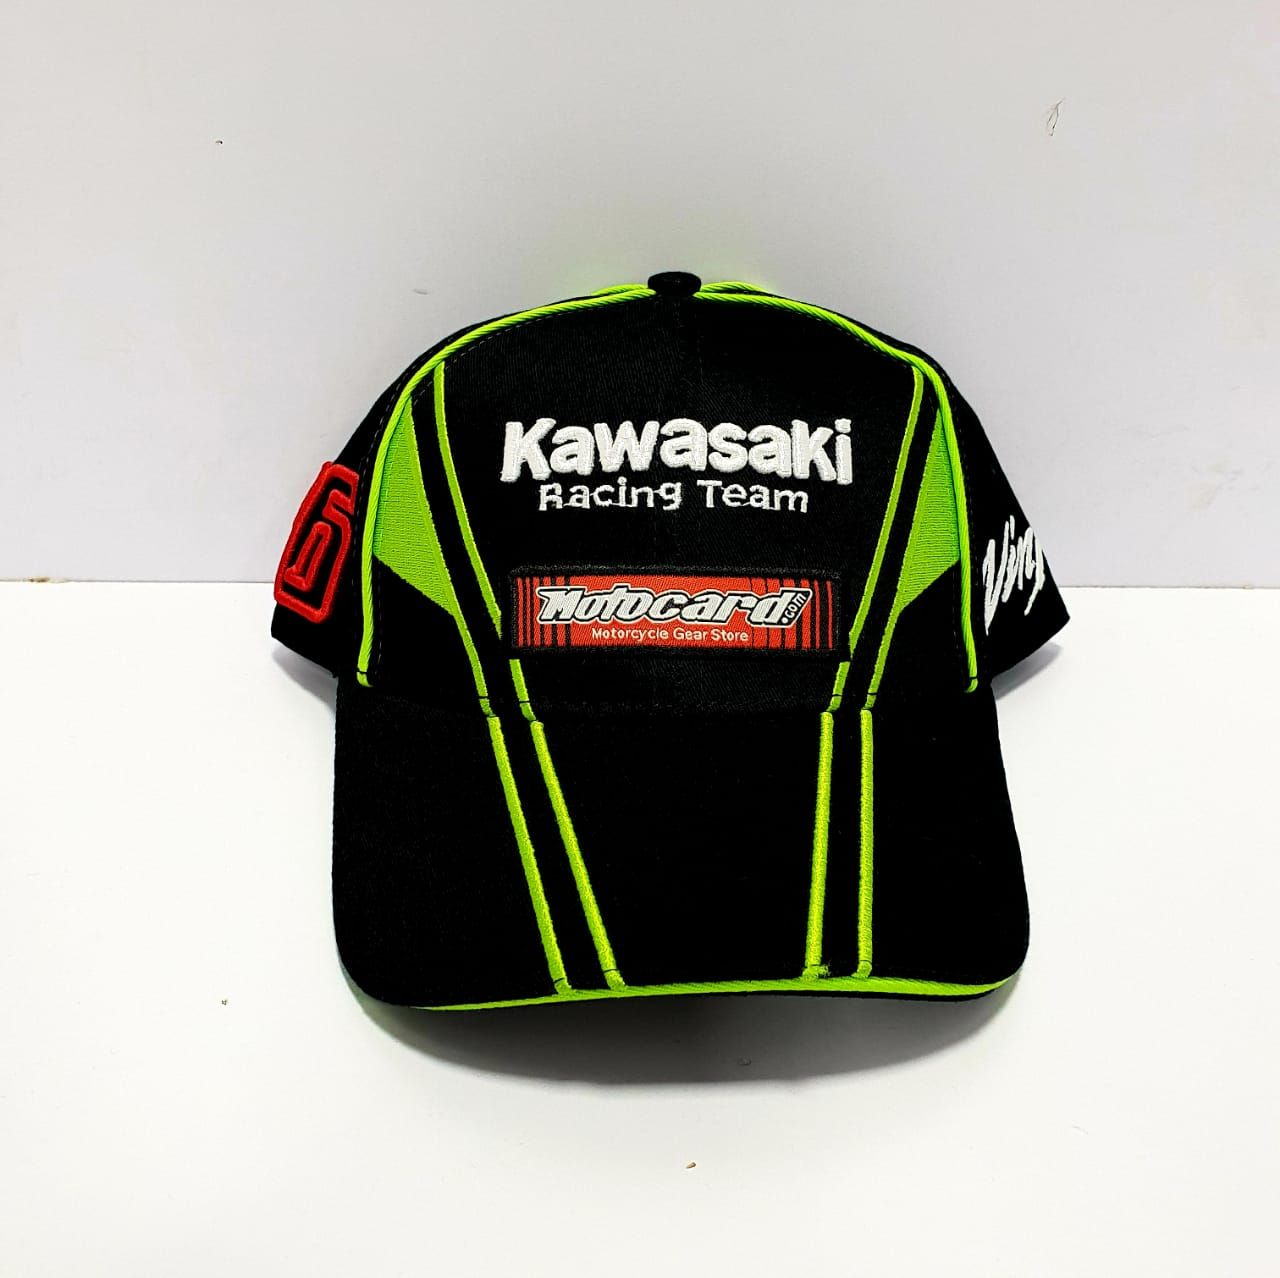 Kawasaki Racing Team Motocard Caps